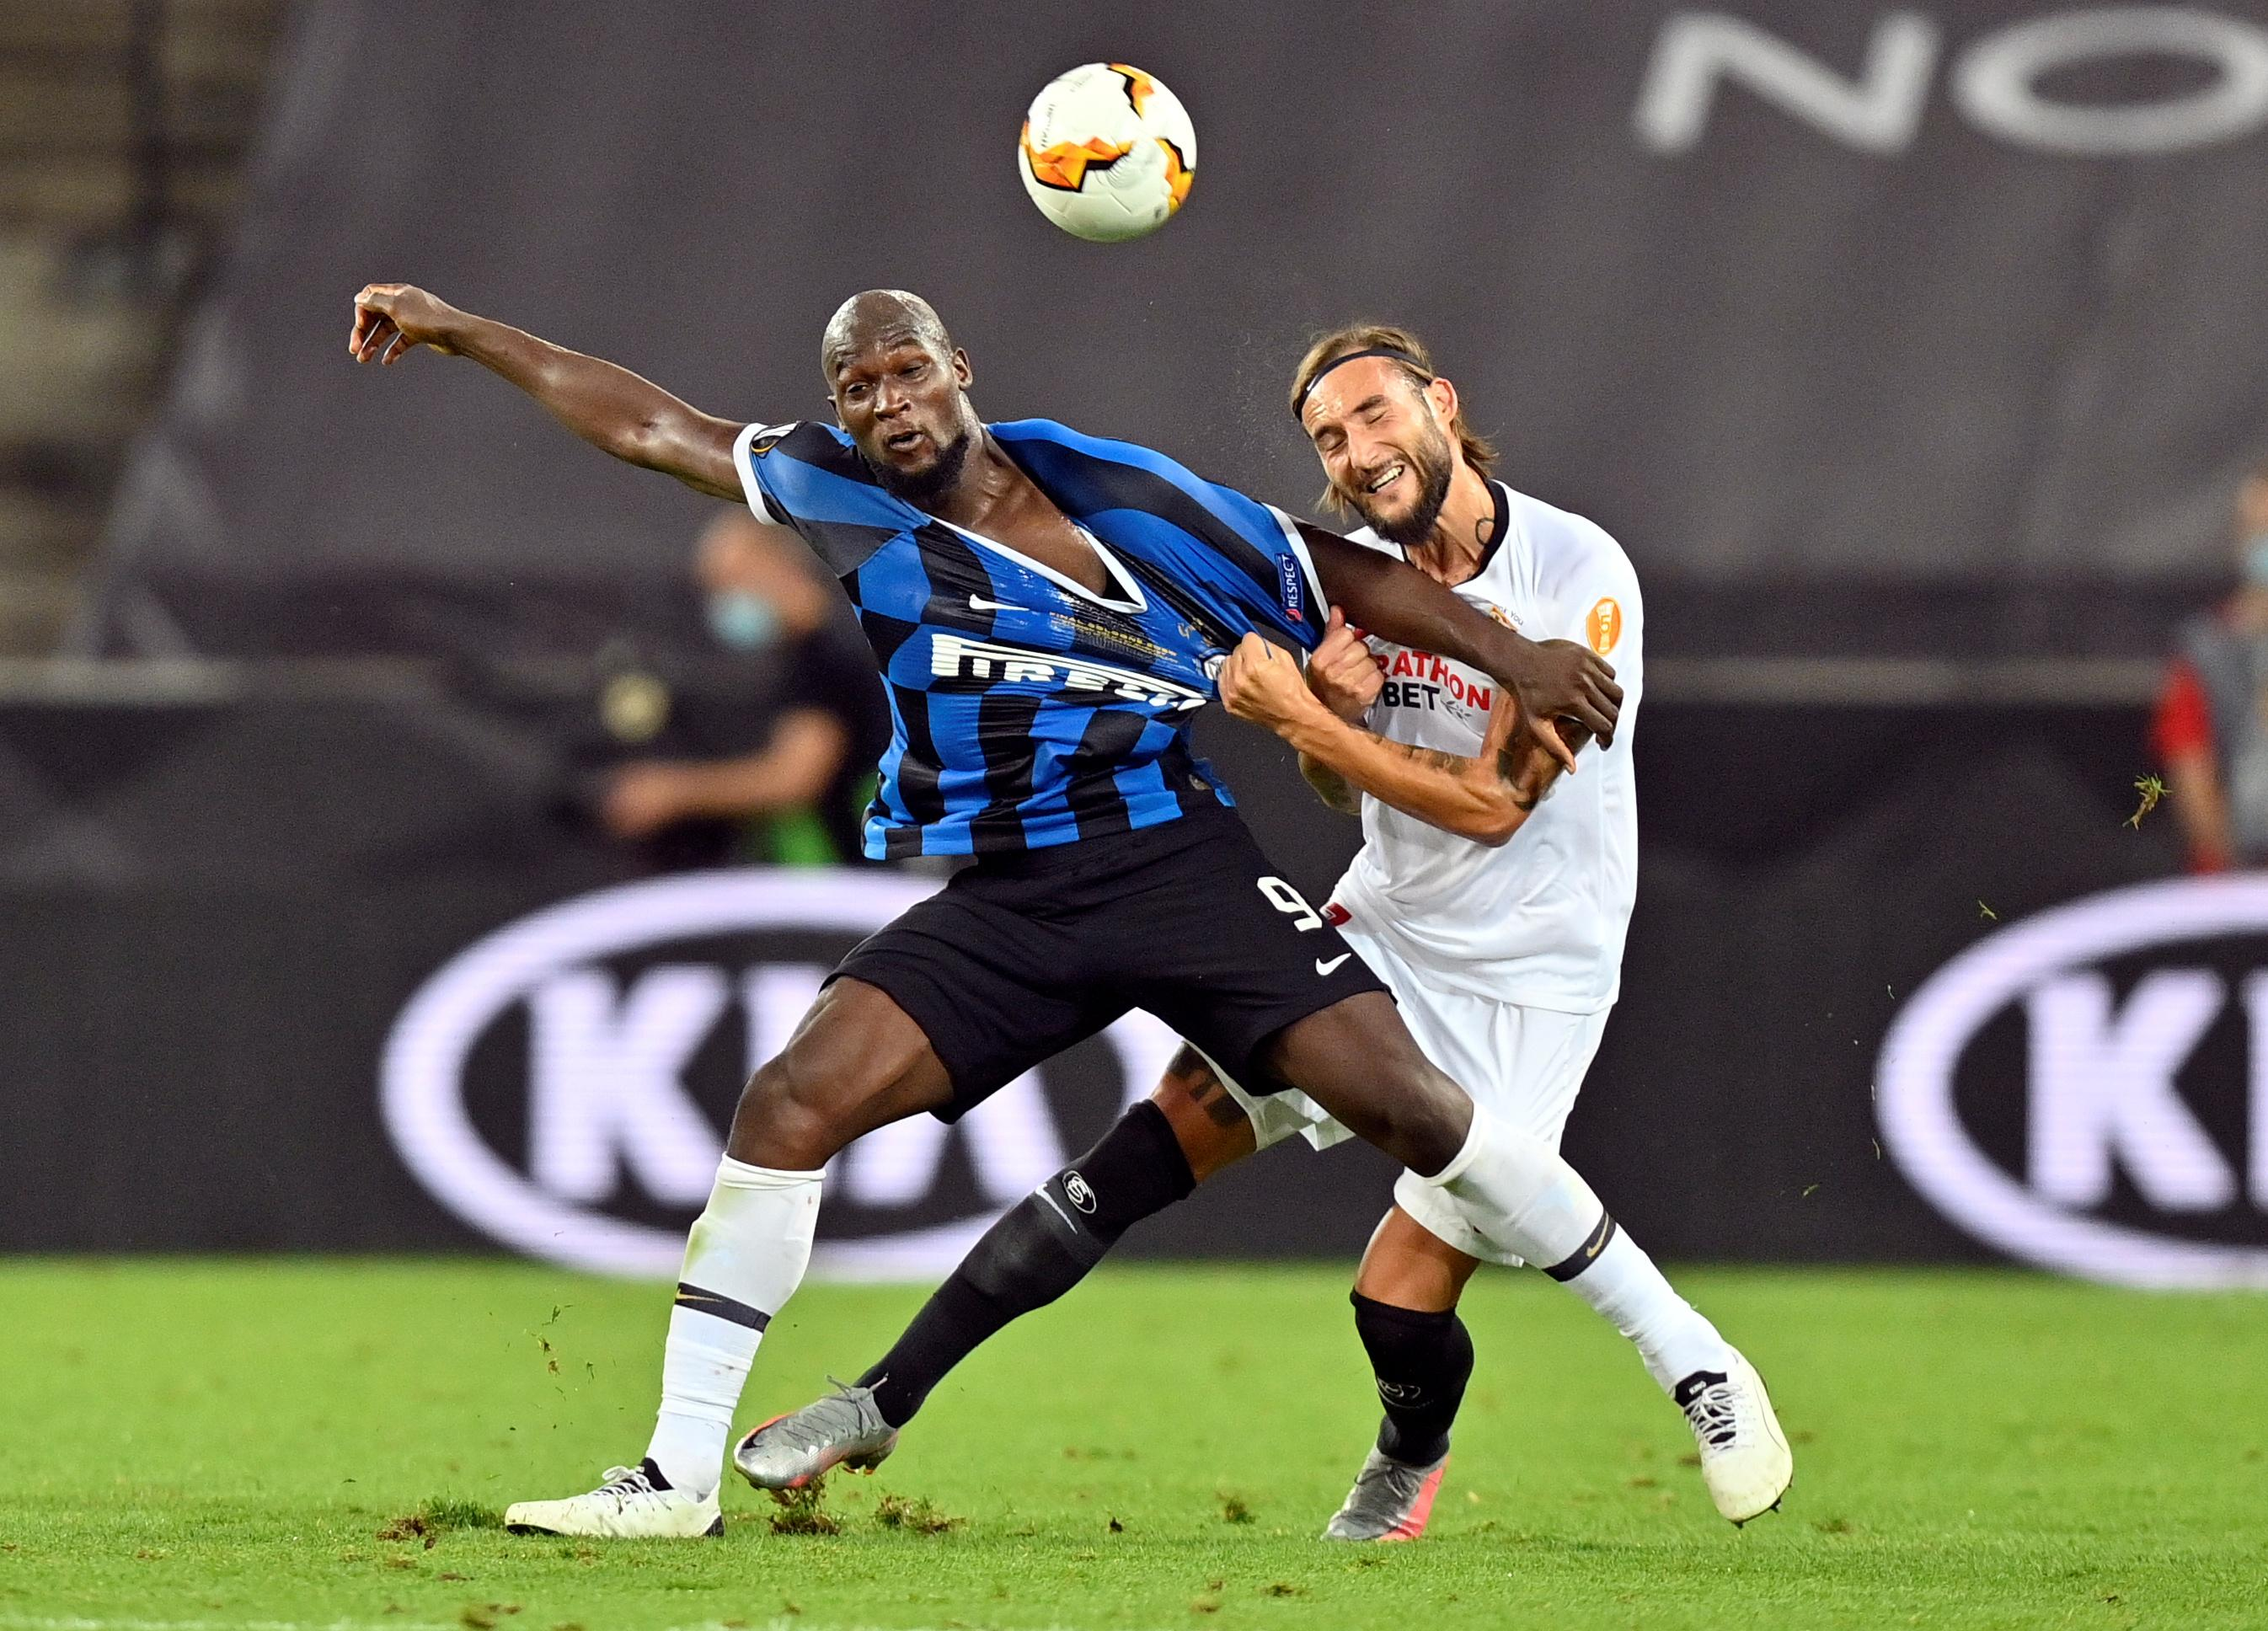 Inter Milan's Romelu Lukaku (blue) in action with Sevilla's Nemanja Gudelj during their Europa League Final at RheinEnergieStadion, Cologne, Germany, August 21, 2020 as play resumes behind closed doors following the outbreak of the coronavirus disease (COVID-19). Photo: Reuters